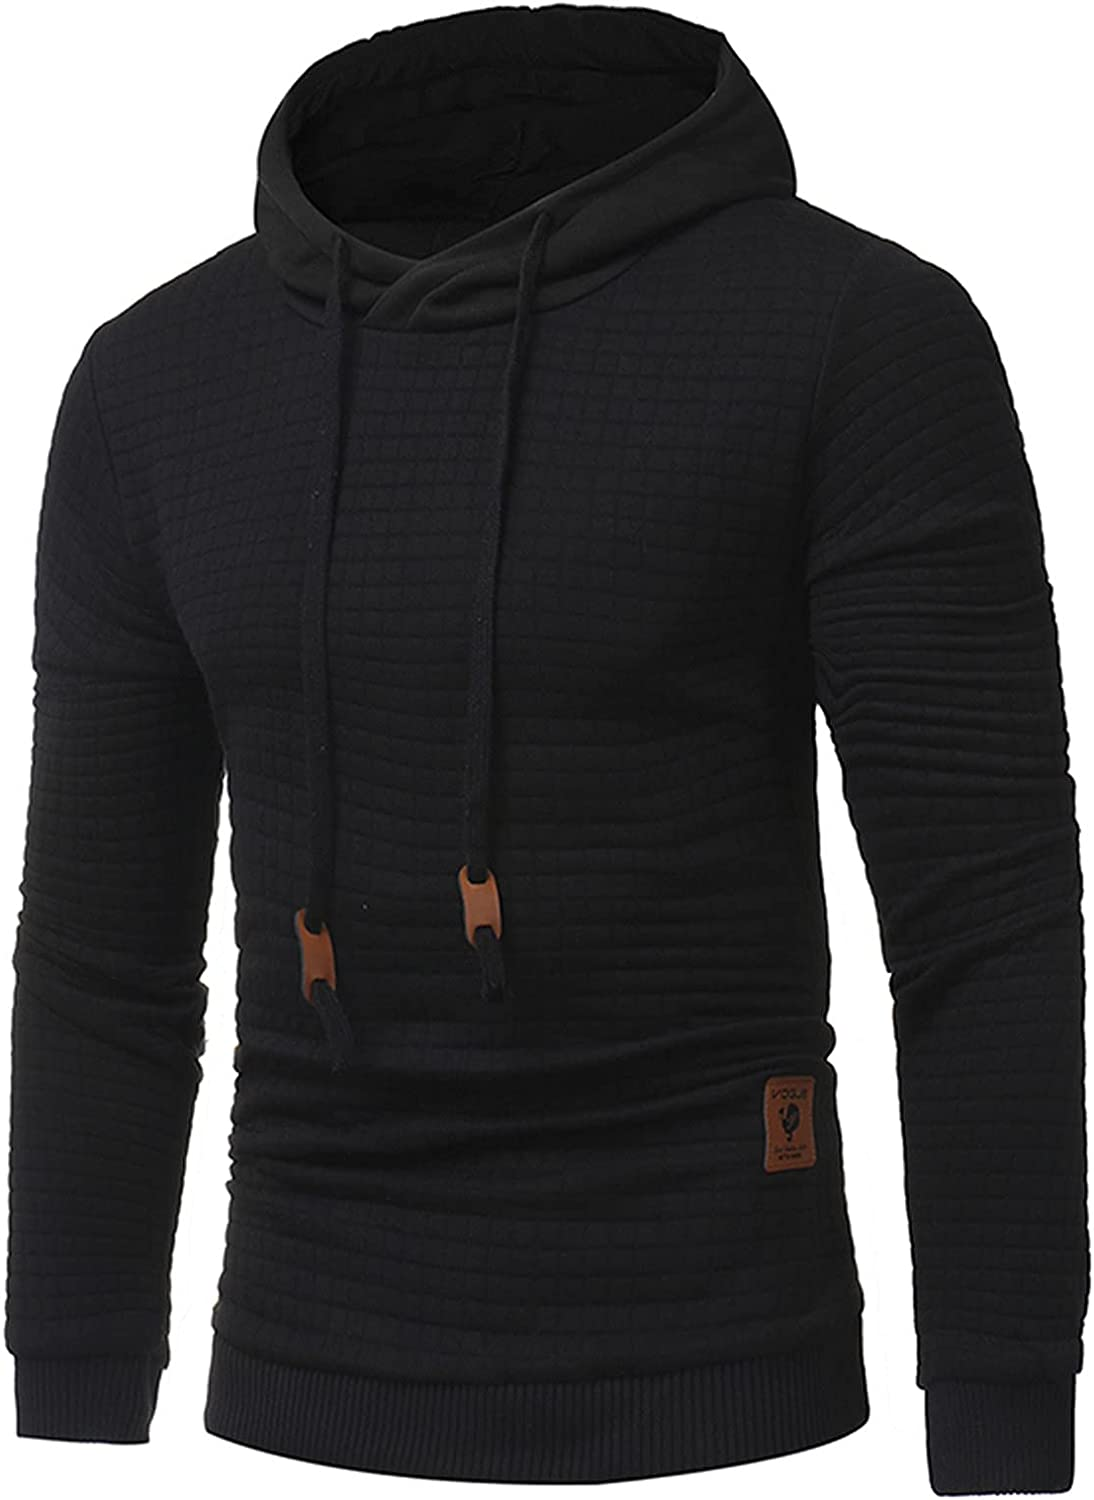 XXBR Hoodies for Mens, Fall Men's Casual Long Sleeve Pullover Hipster Drawstring Plaid Jacquard Hooded Sweatshirts